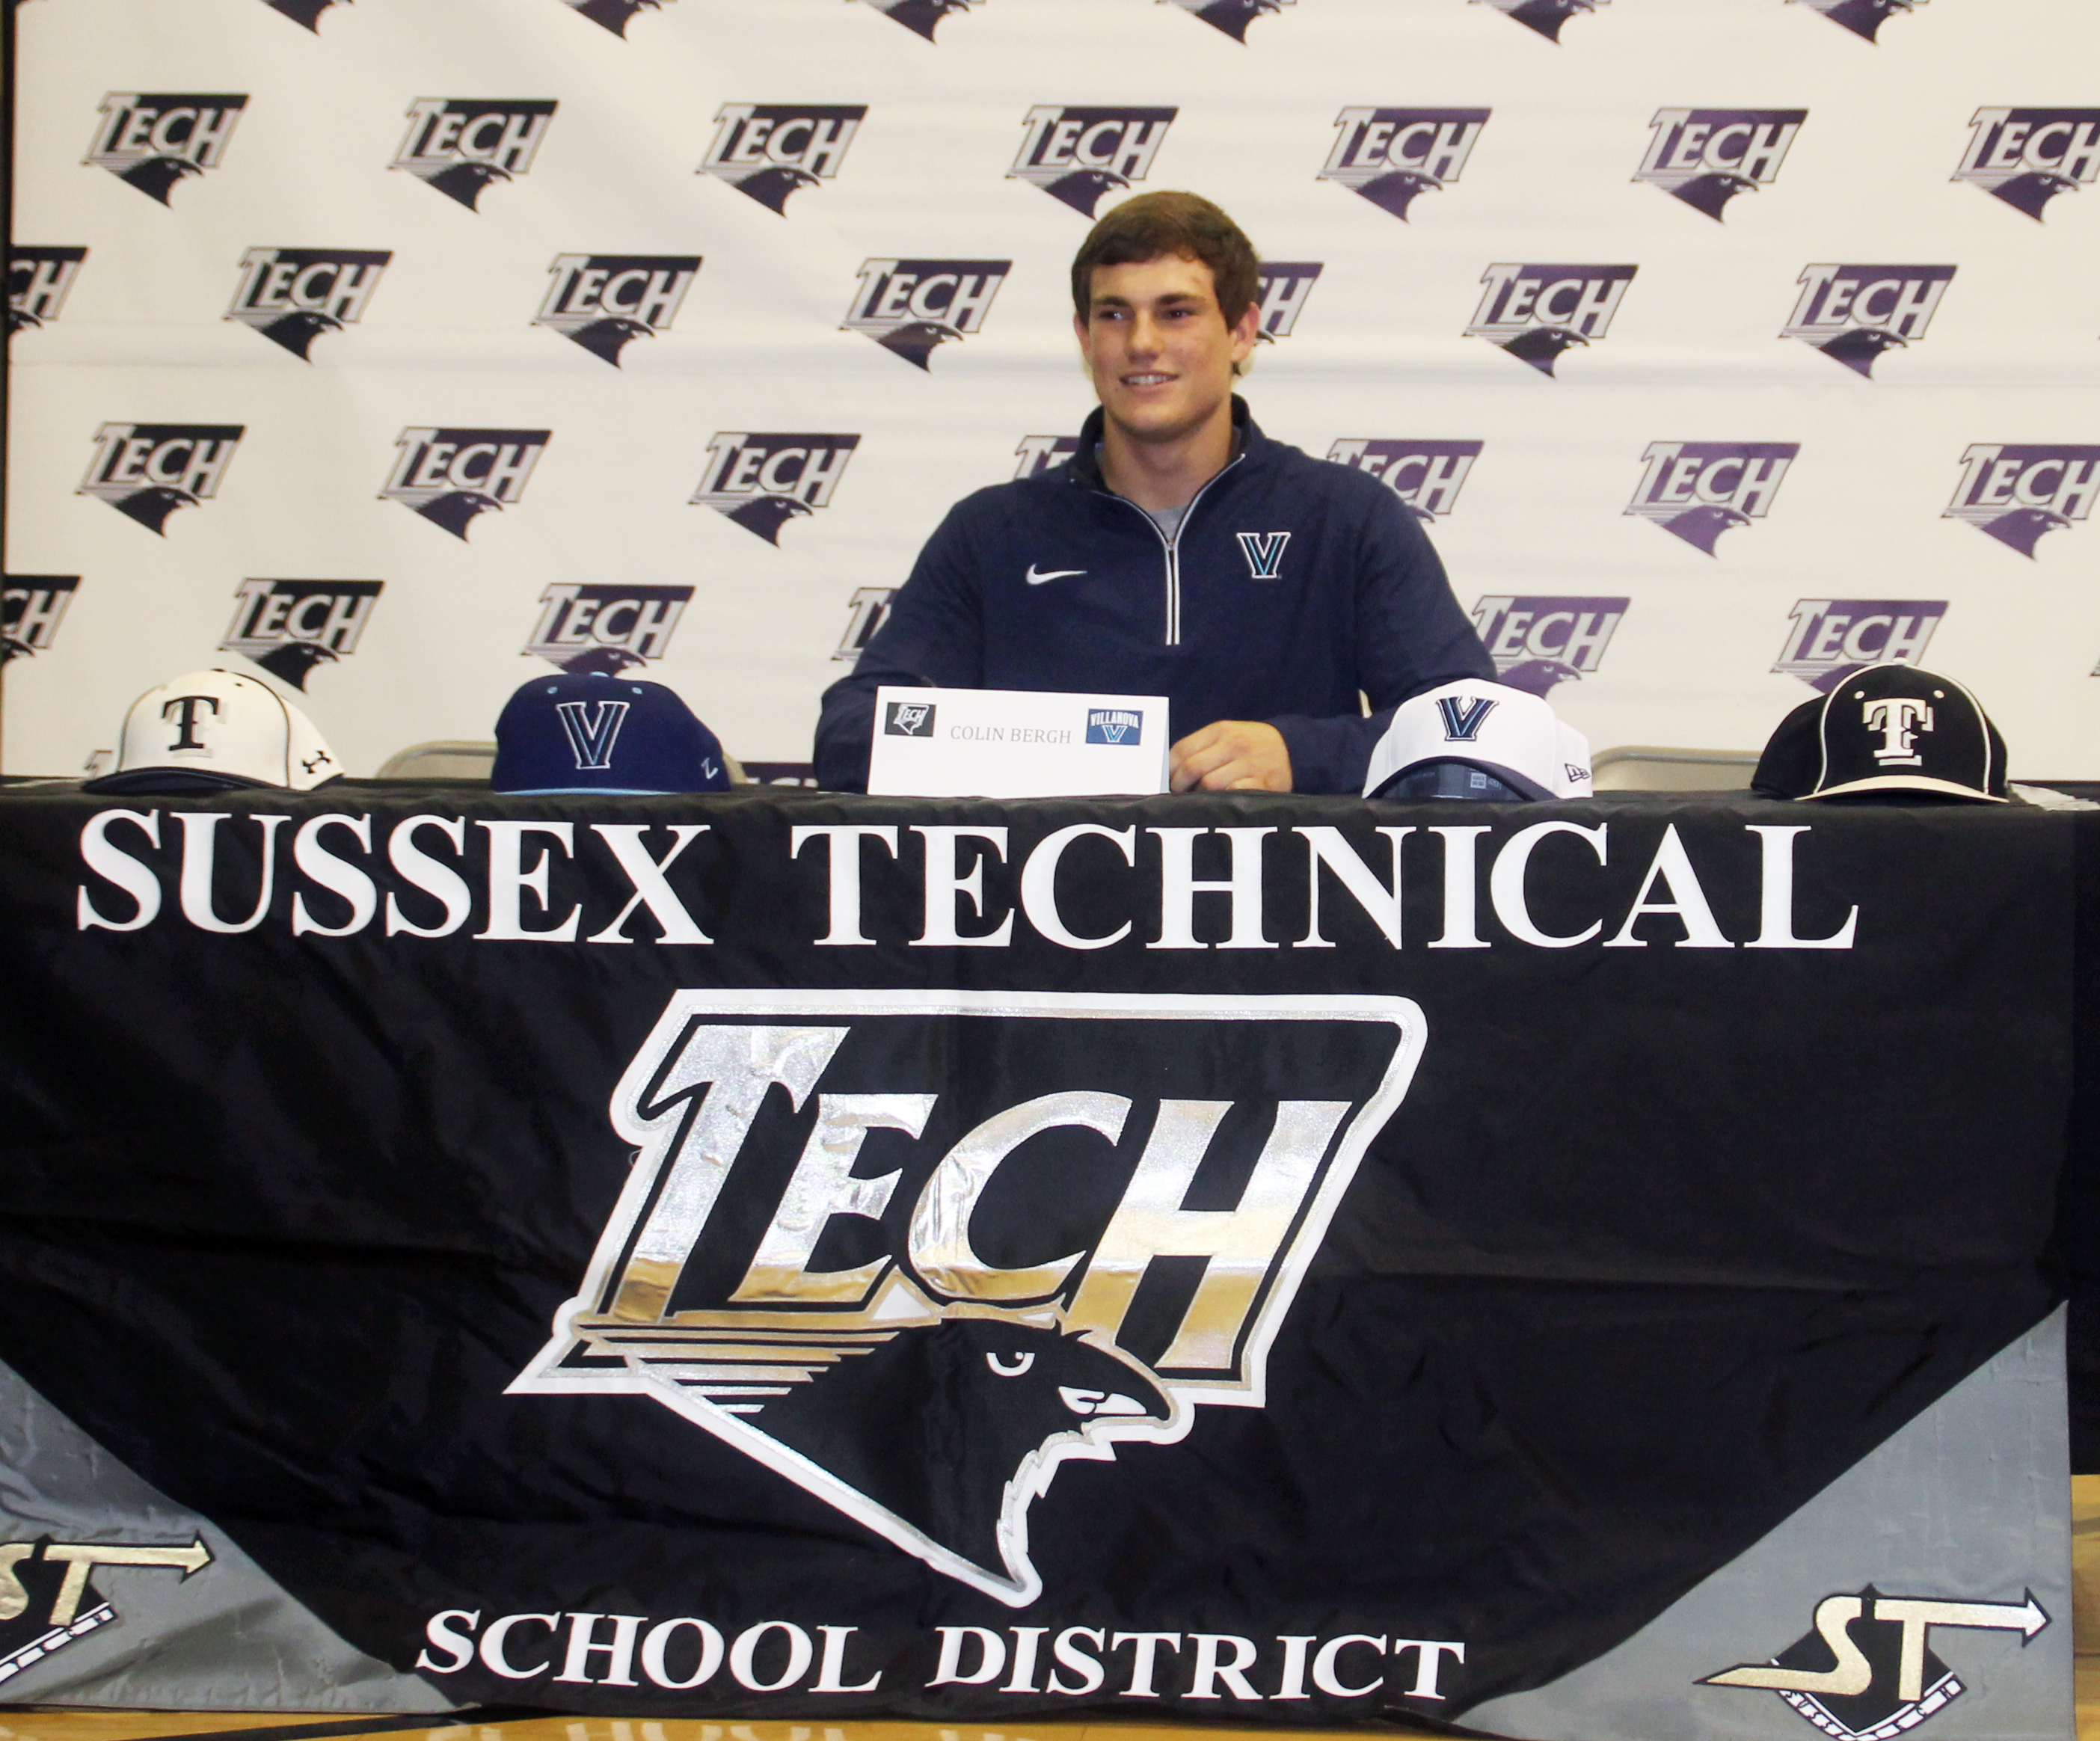 Ravens Take Flight; Sussex Tech Holds Signing Day Event